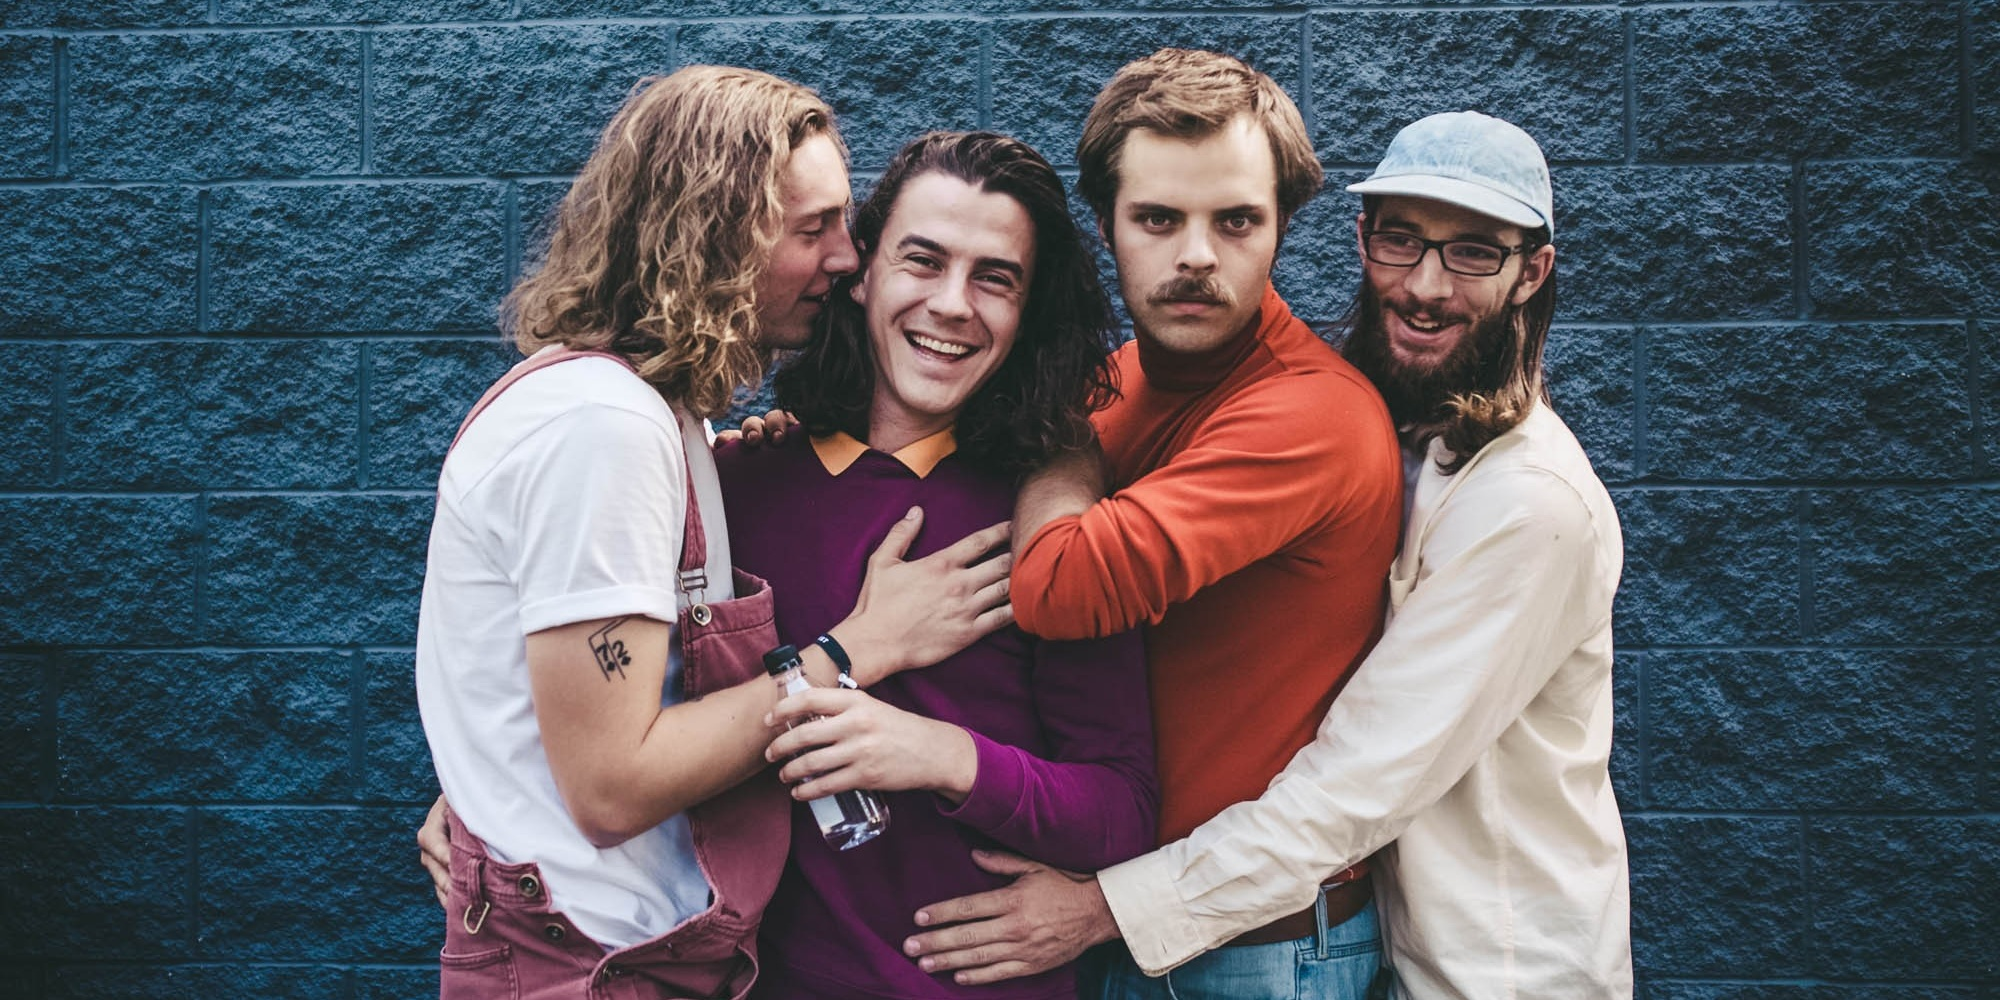 Peach Pit to perform in Singapore